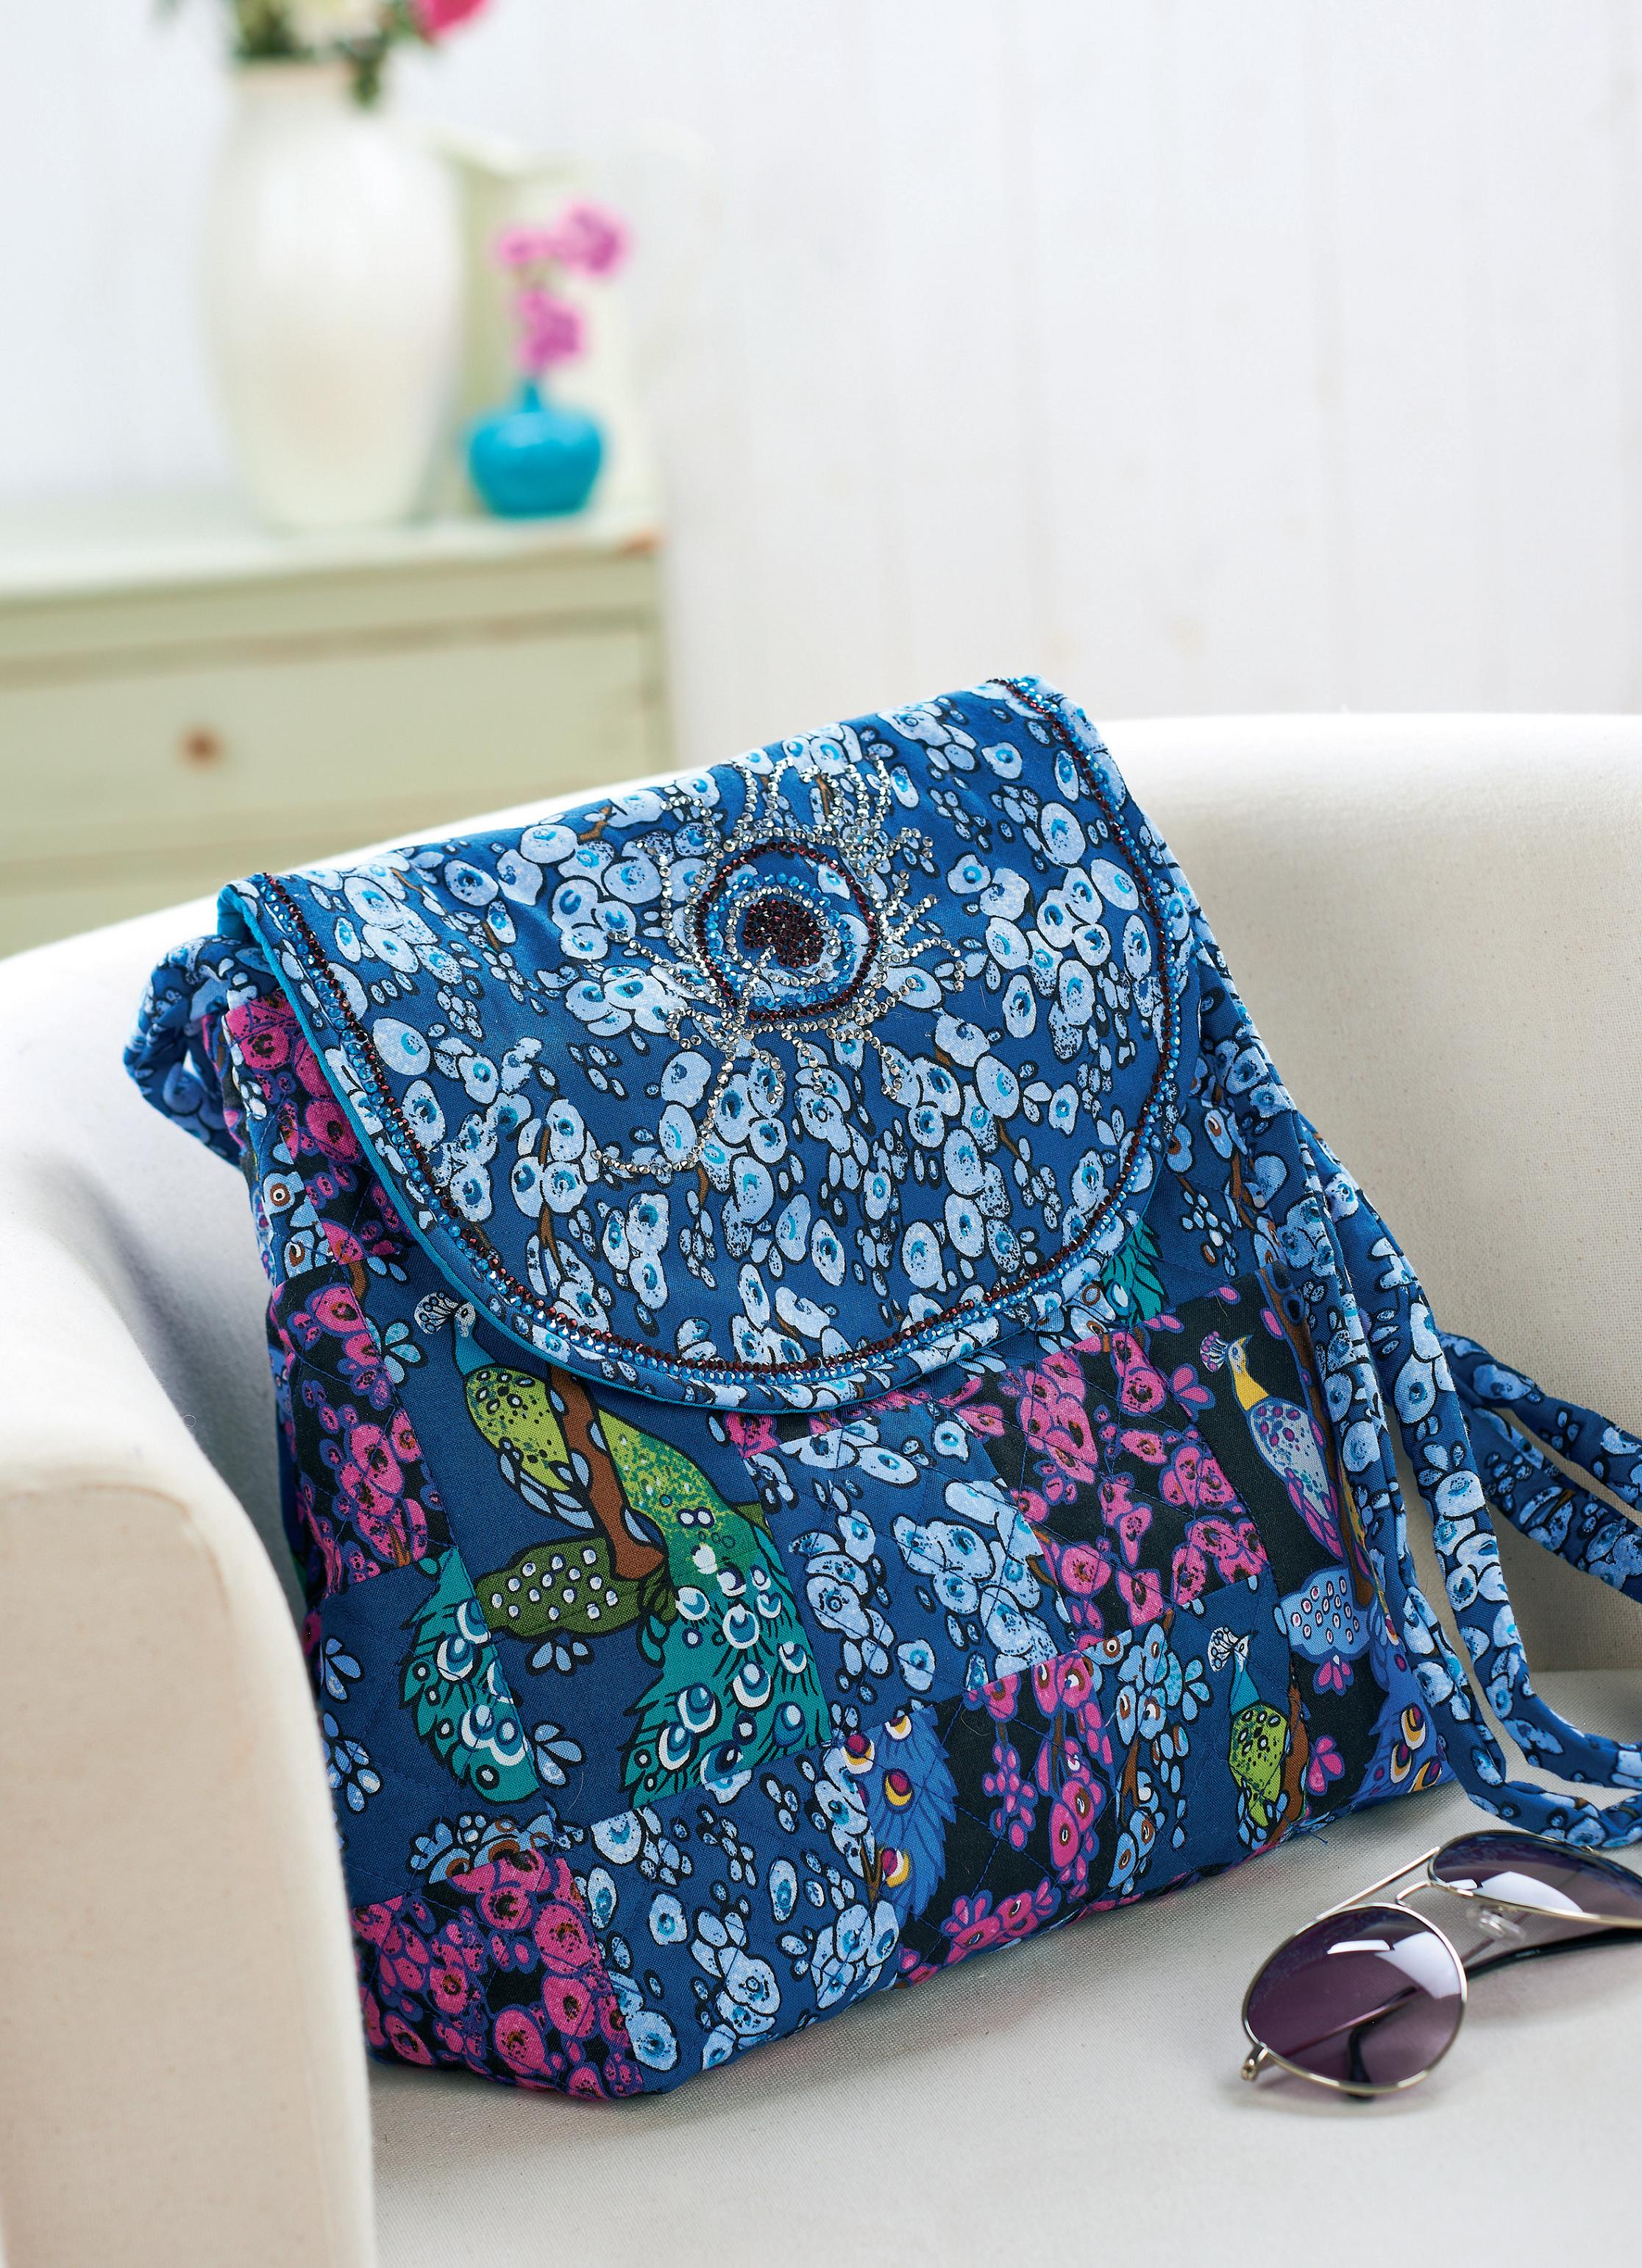 V Amp A Peacock Fabric Bag Free Sewing Patterns Sew Magazine